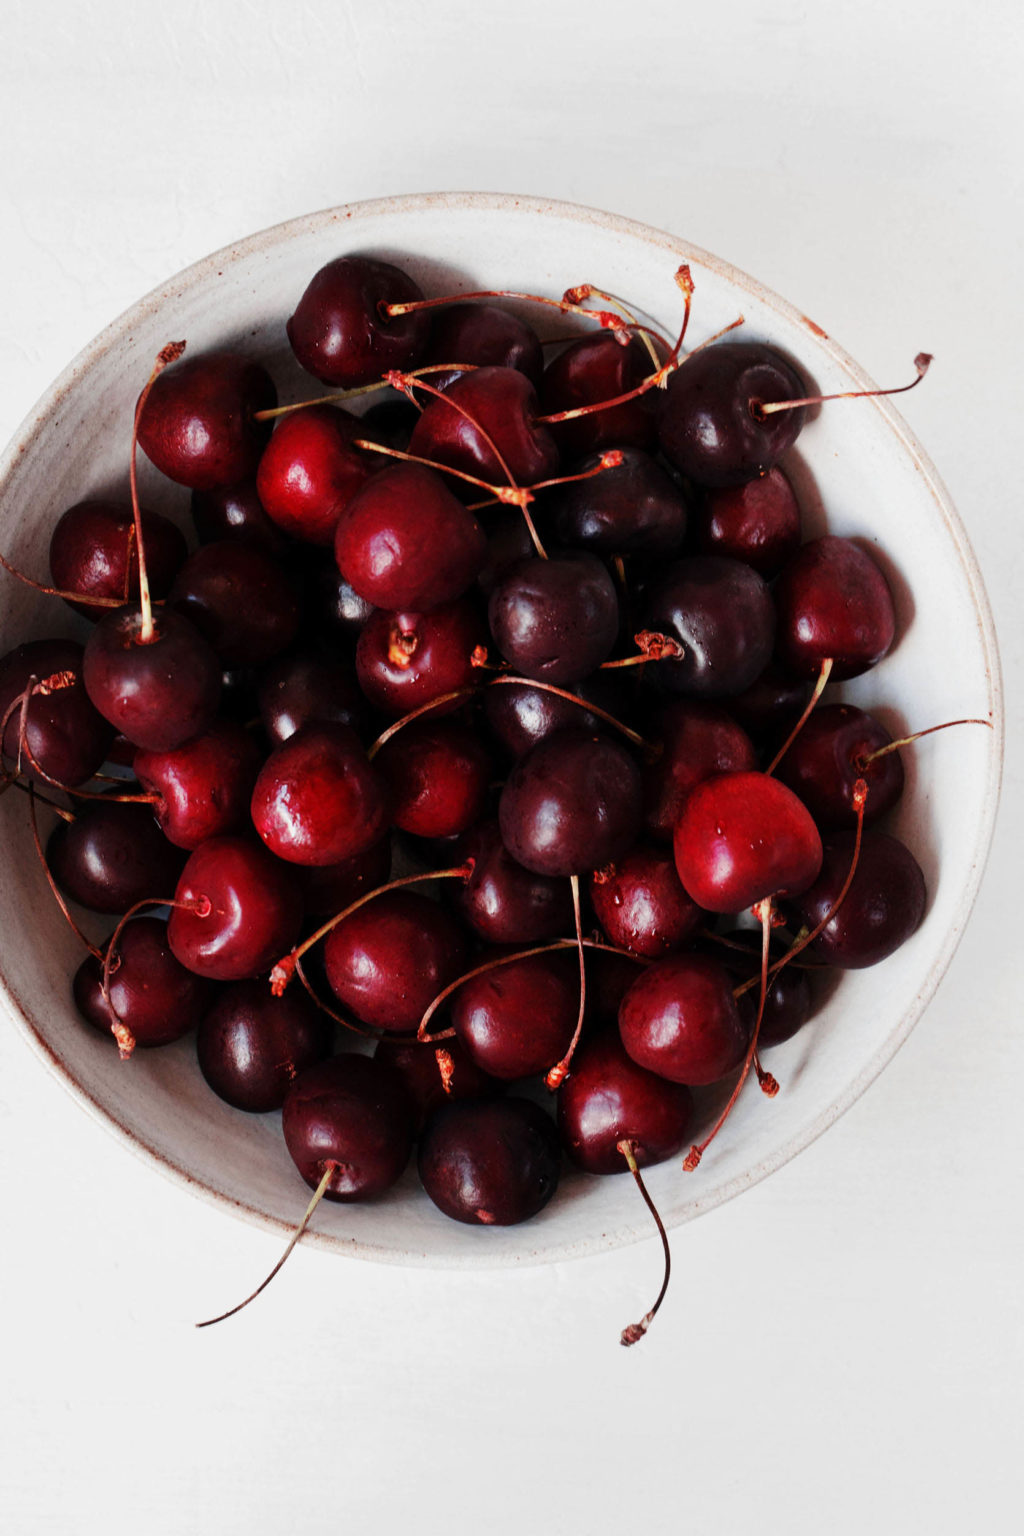 A bowl of whole, dark red sweet cherries. The white bowl is pictured against a white backdrop.